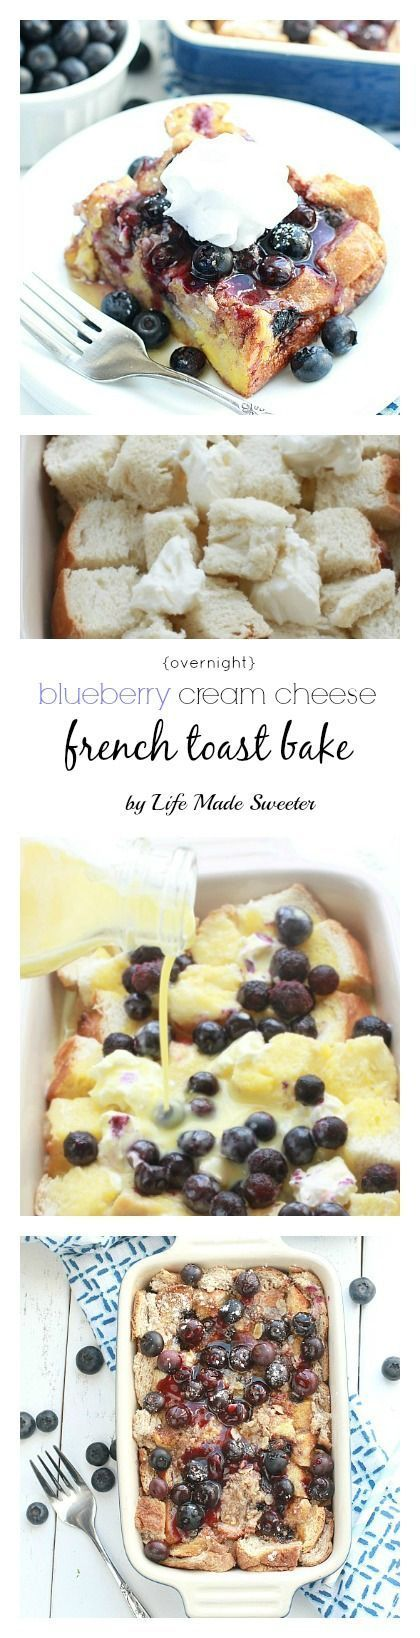 Overnight Blueberry Cream Cheese French Toast Bake - Super easy & delicious baked French Toast bursting with blueberries, cream cheese, brown sugar streusel and the BEST blueberry sauce. Make it the night before and pop it in the oven in the morning. Perfect for Mother's Day or any special breakfast, brunch or even dinner.